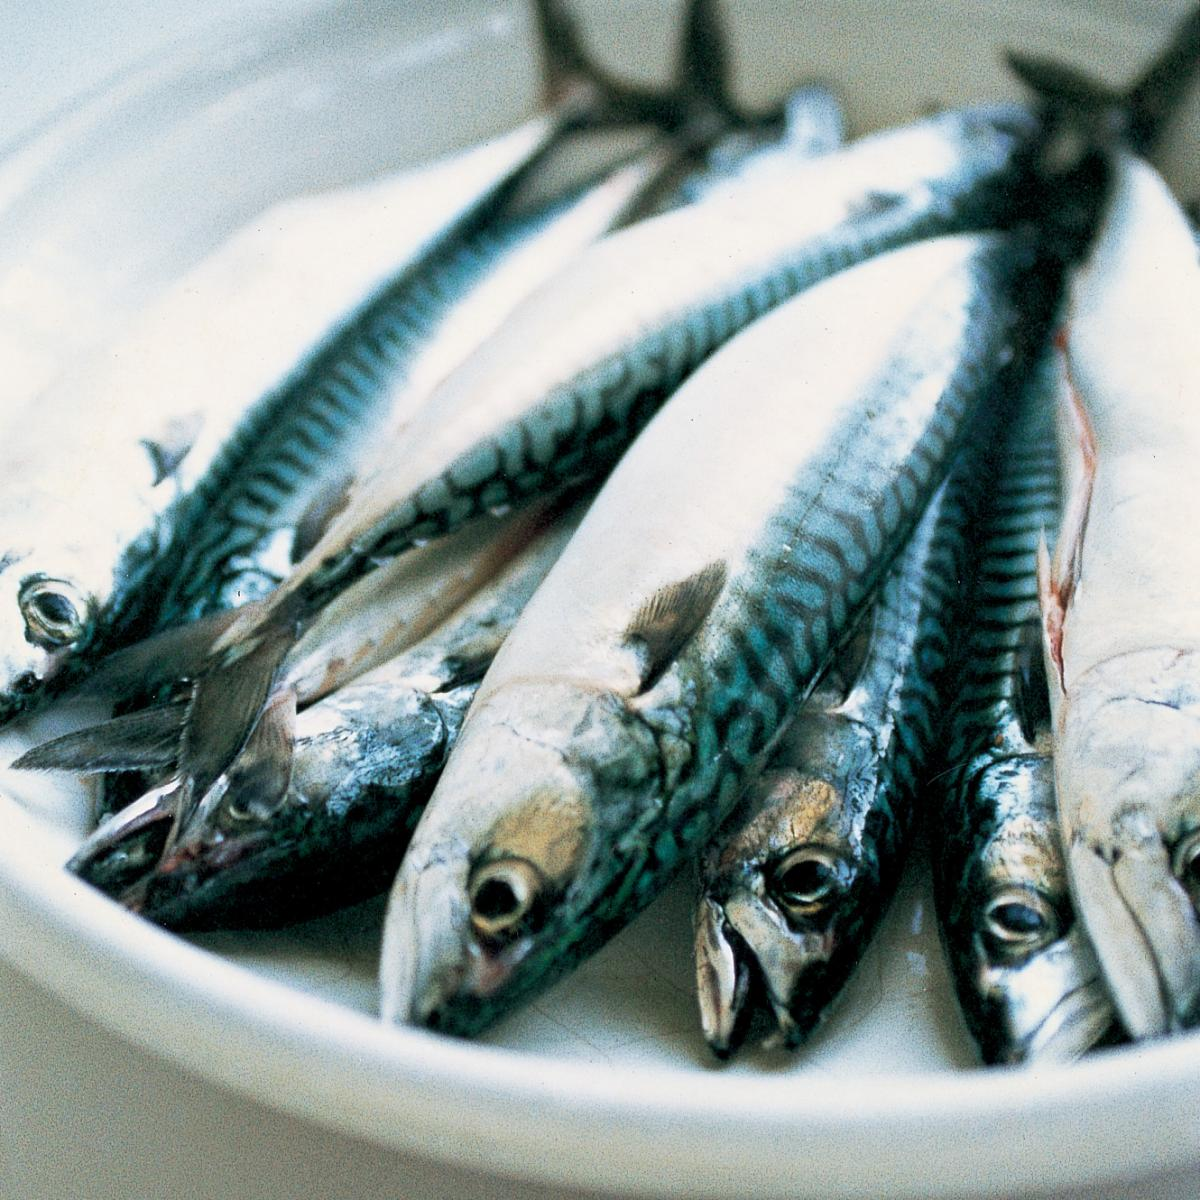 Ingredient fish mackerel